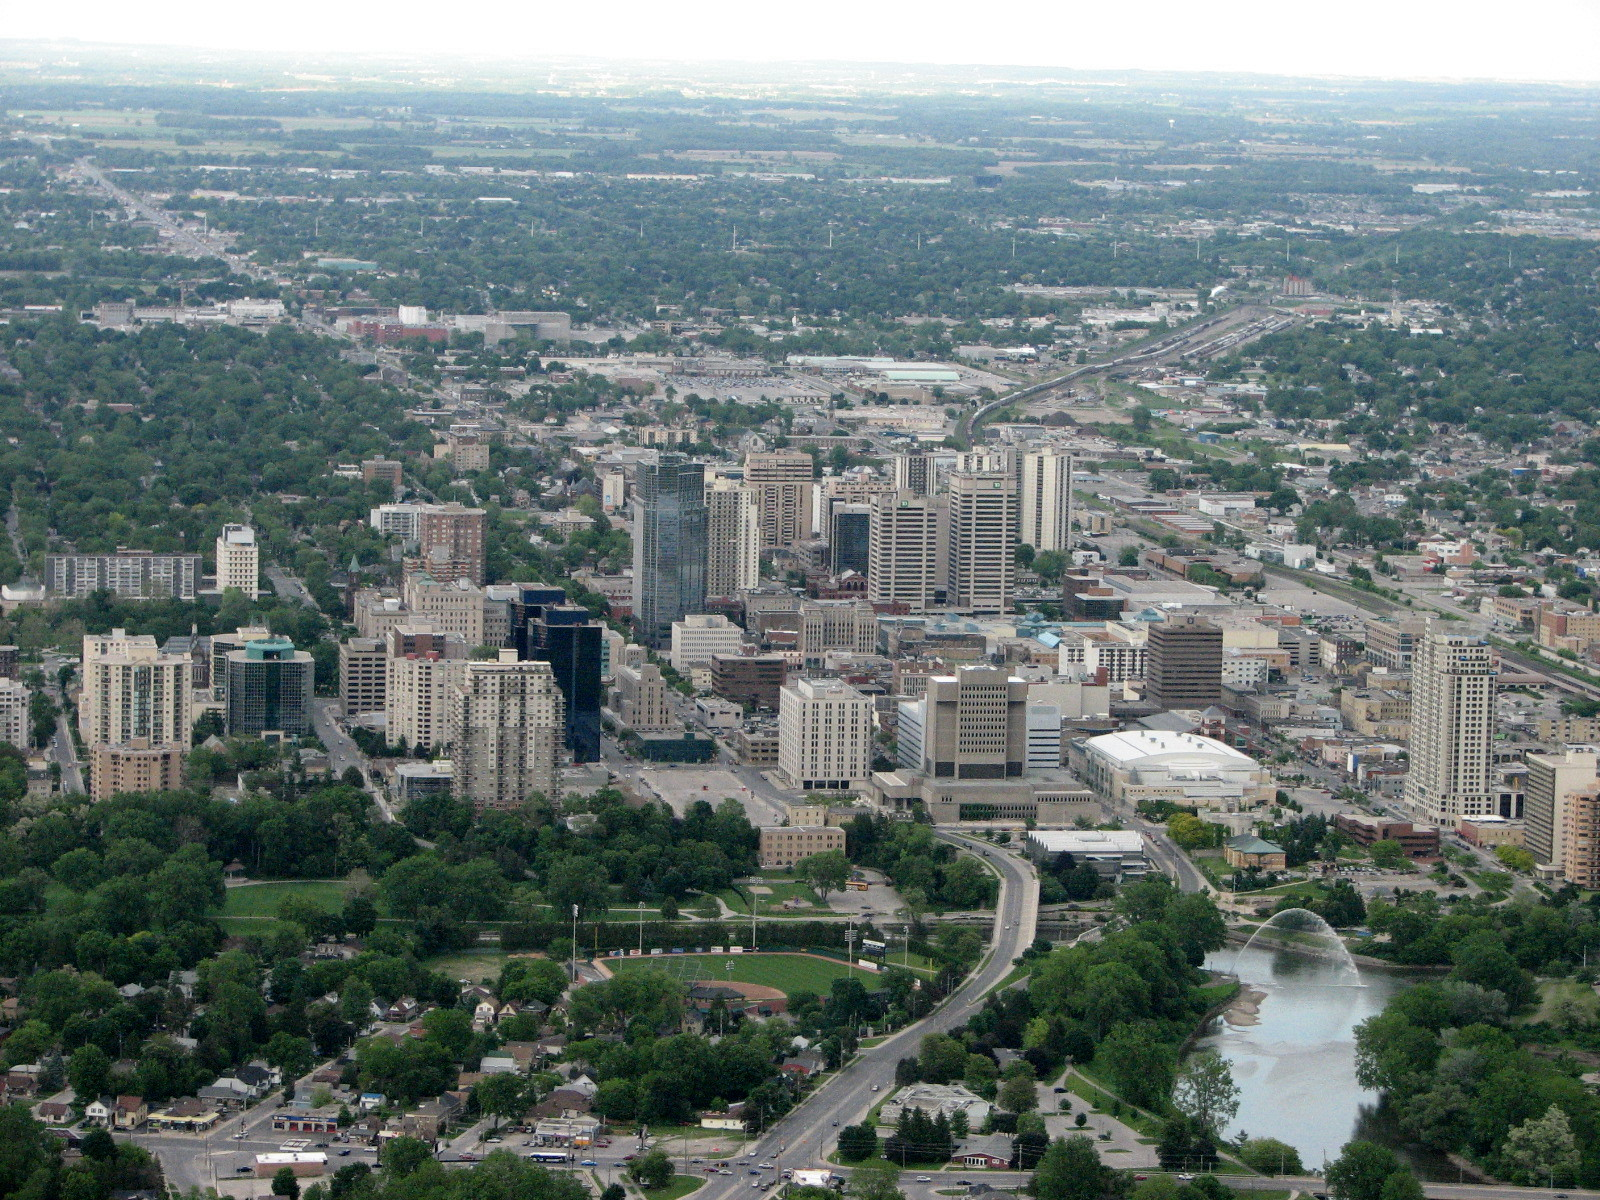 London,_Ontario,_Canada-_The_Forest_City_from_above.jpg